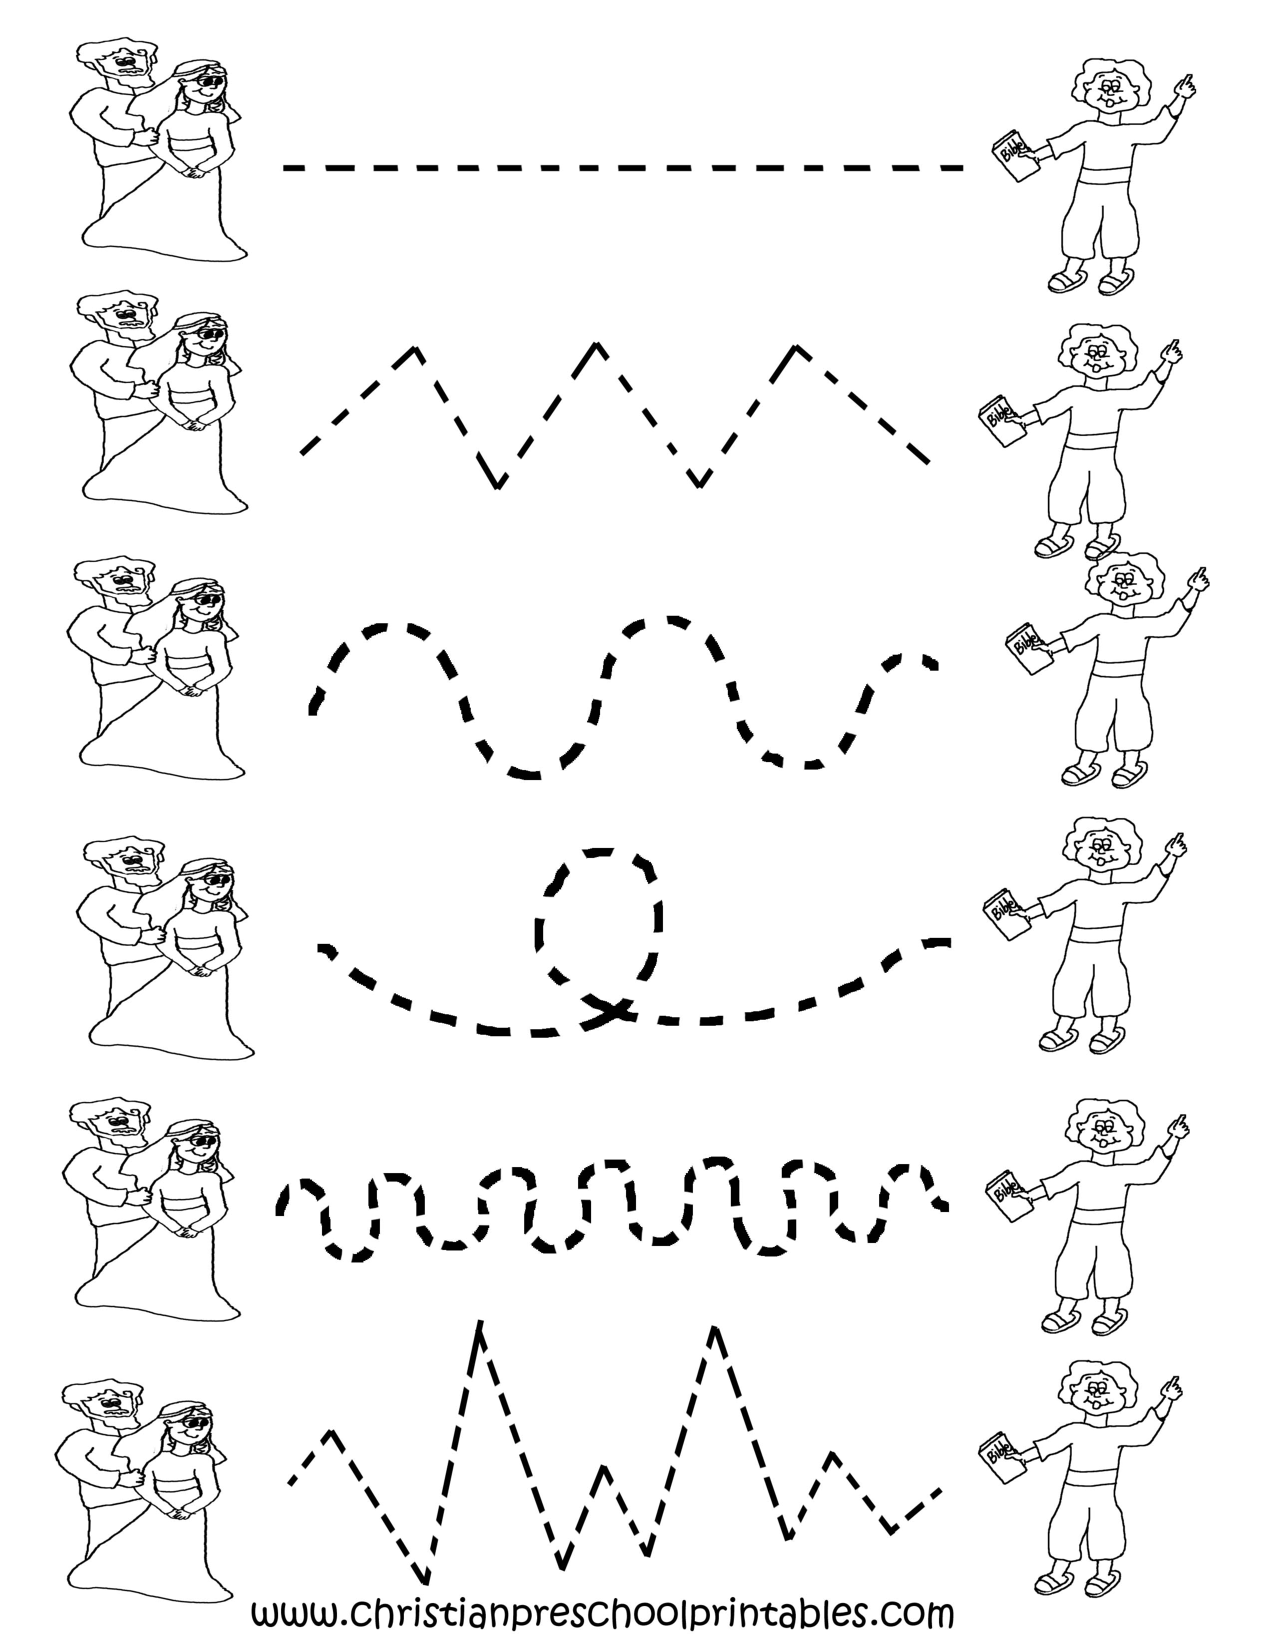 Worksheet Preschool Printable Tracing Worksheets preschool worksheets tracing classwork worksheets